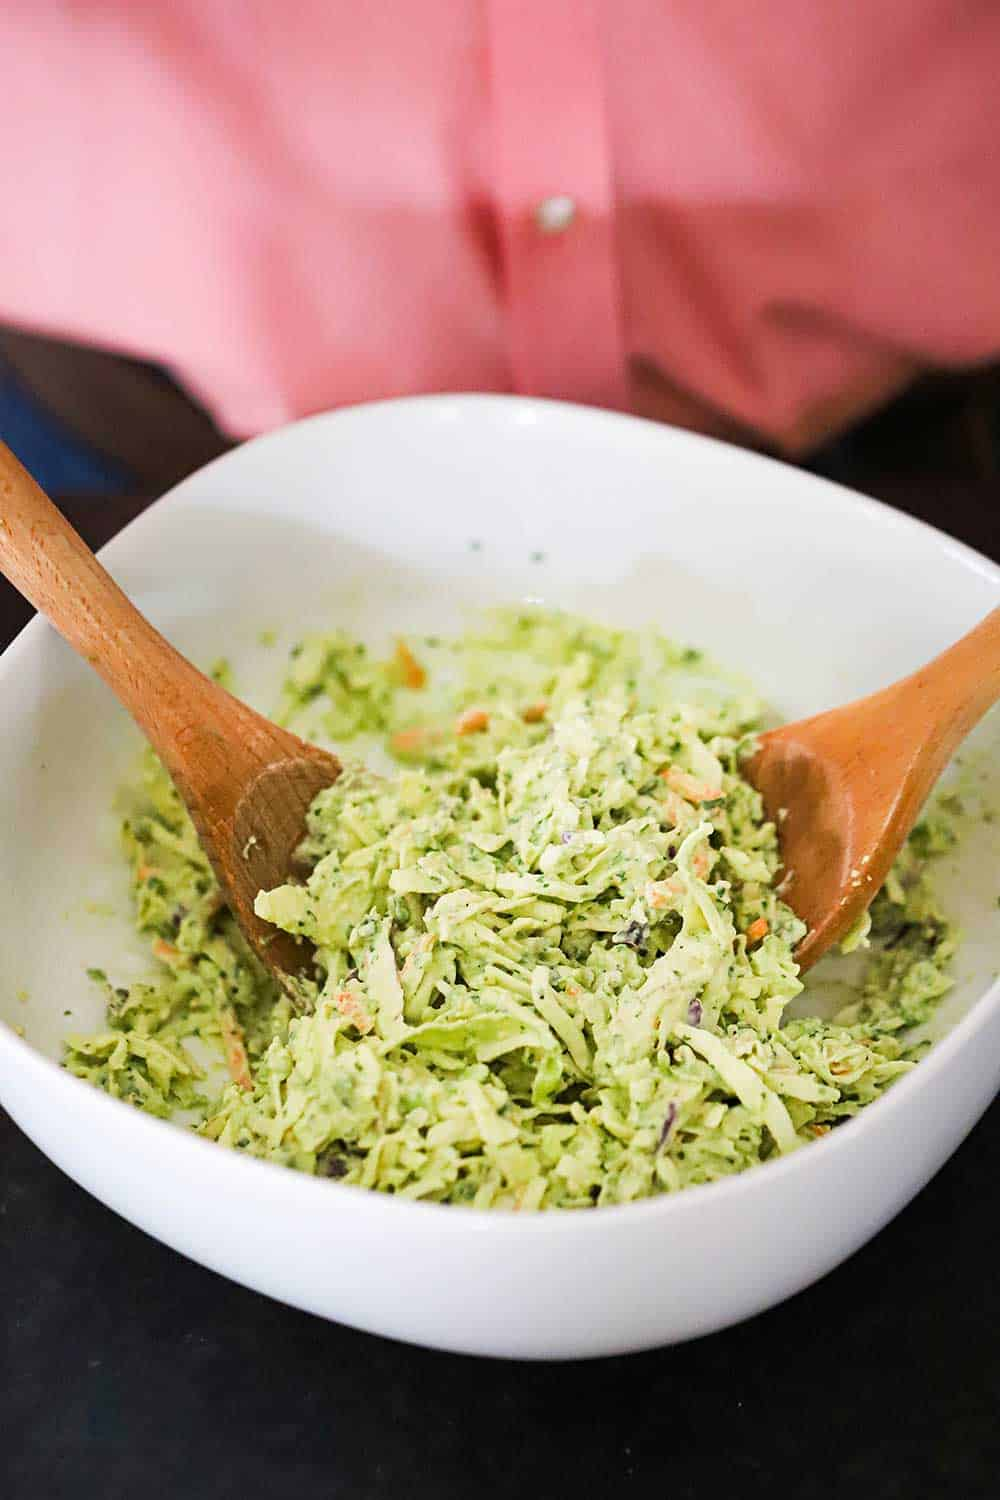 A person in a pink shirt standing behind a white serving bowl filled with avocado-lime slaw with two wooden spoons inserted in it.